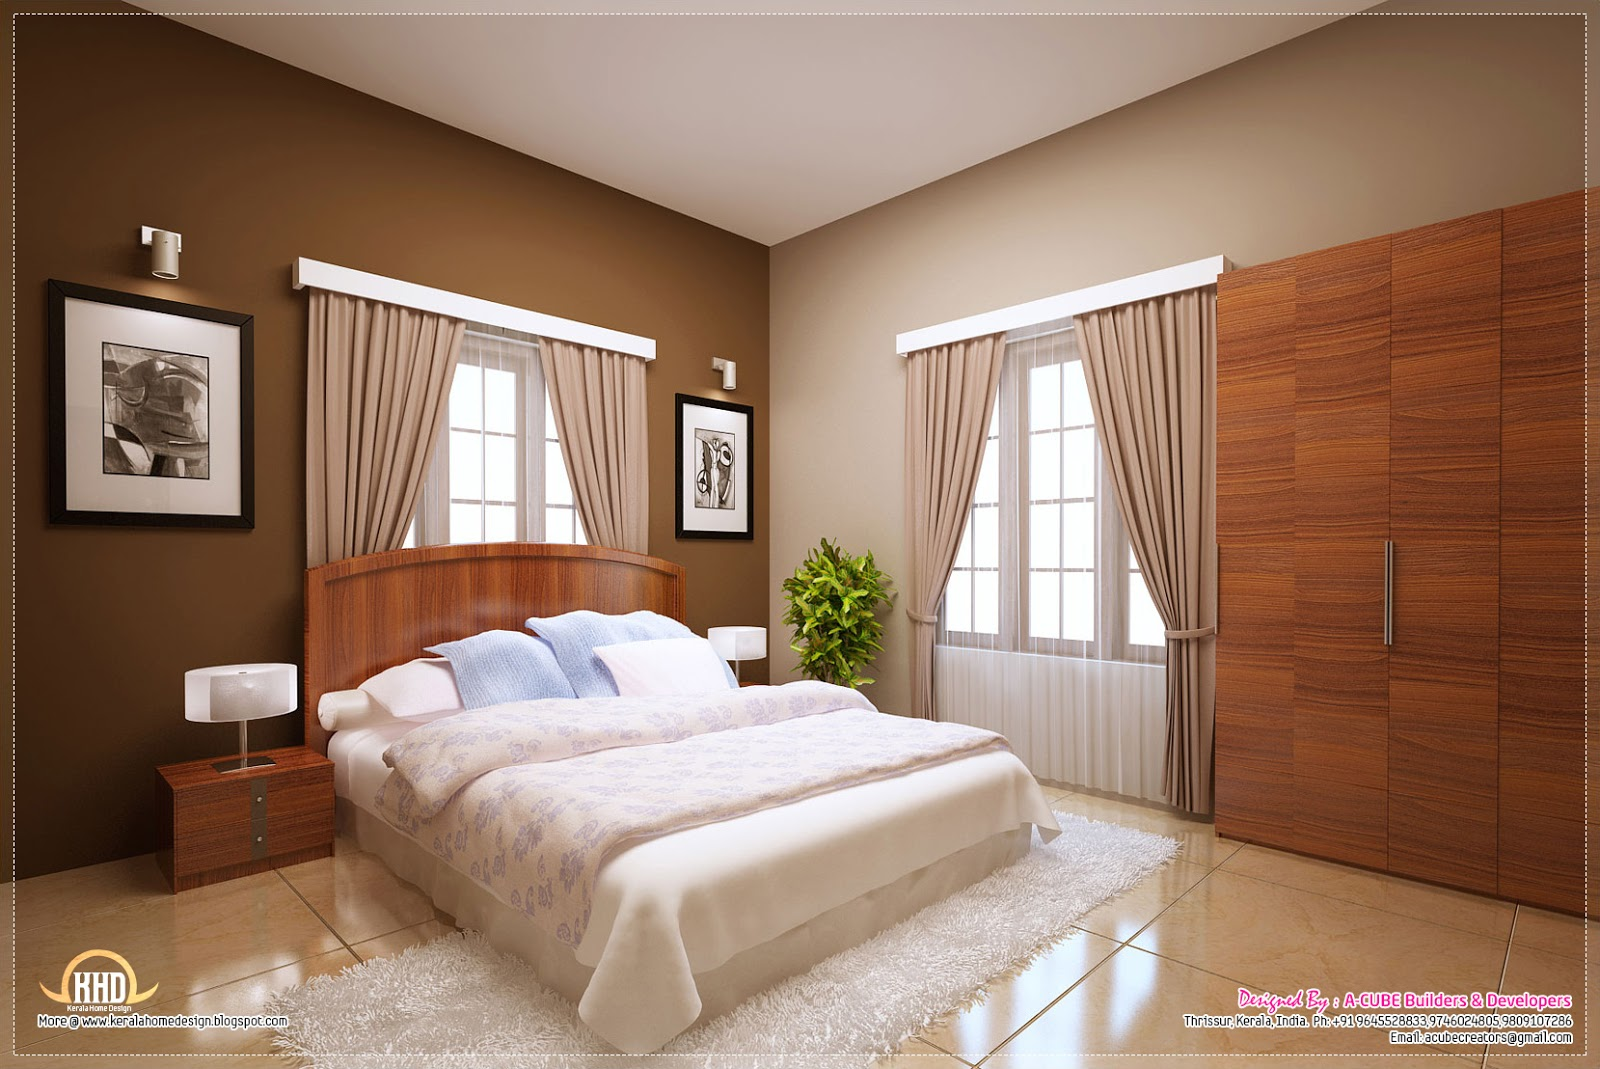 Awesome interior decoration ideas kerala home design and for Bedroom interior design india